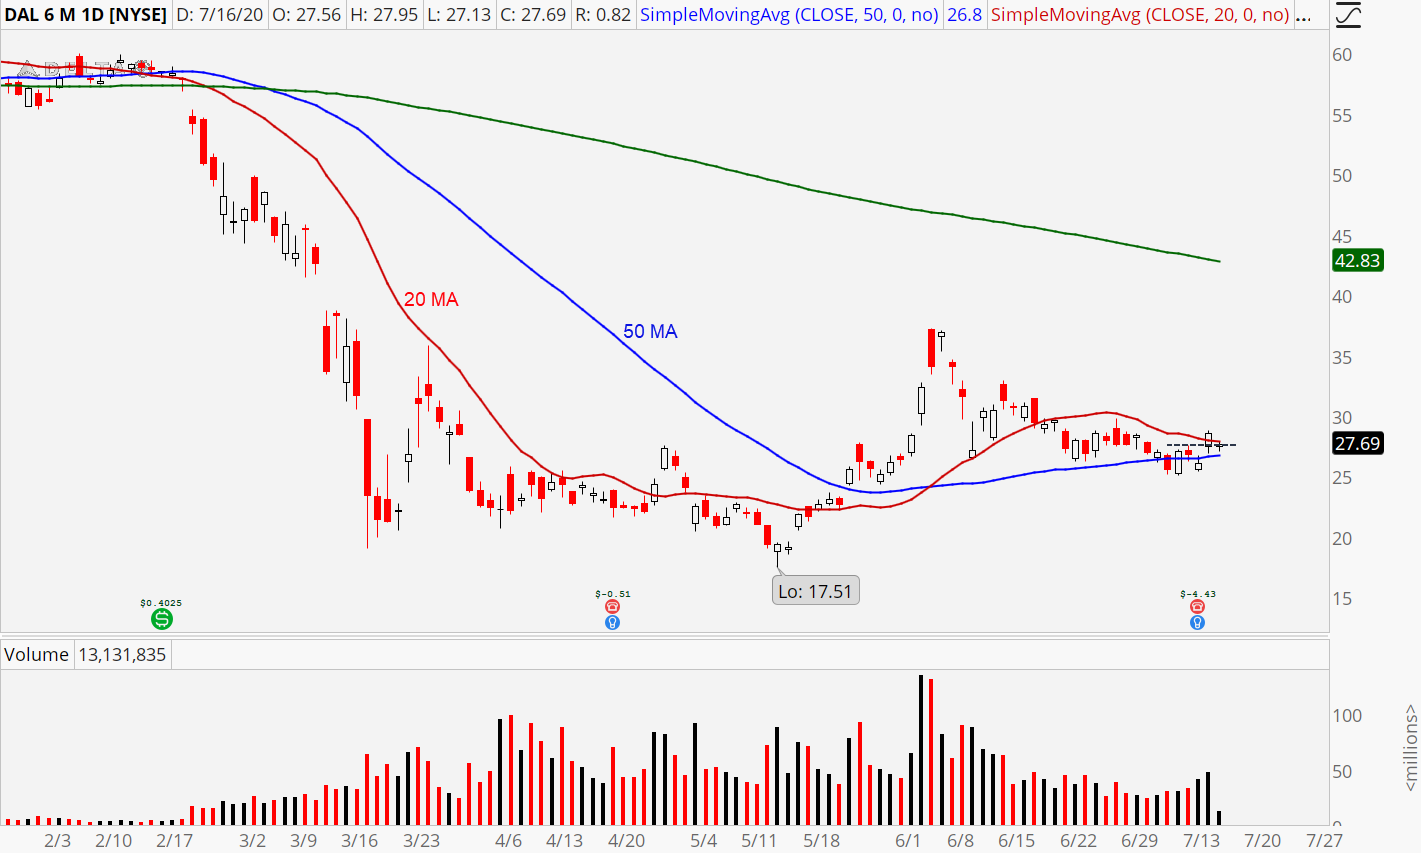 Delta (DAL) stock chart showing bottoming action